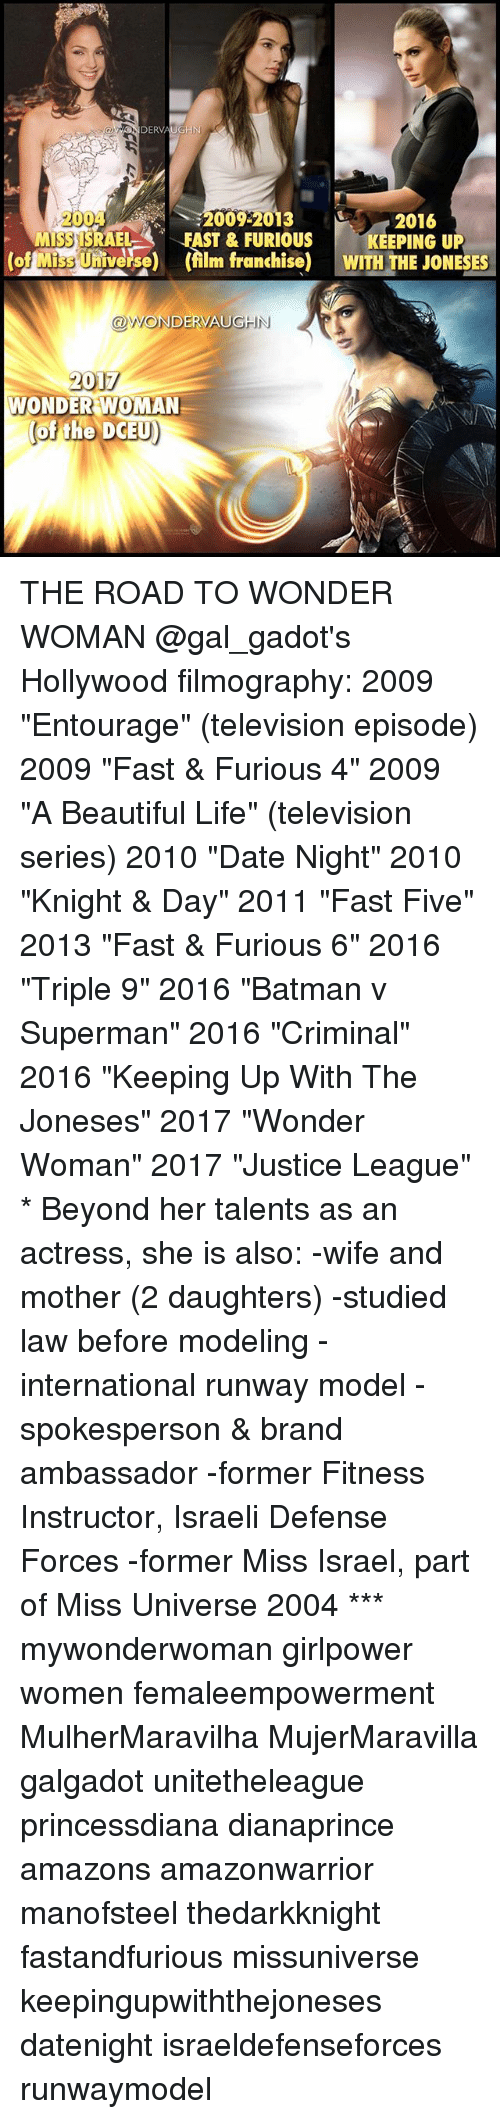 "Batman, Beautiful, and Life: DERVAUGHN  A2004  2016  MS3 ISRAEL A FAST & FURIOUS  KEEPING UP  Miss U  (film franchise) WITH THE JONESES  ODWONDERVAUGHN  2017  WONDER WOMAN  of the DCEU) THE ROAD TO WONDER WOMAN @gal_gadot's Hollywood filmography: 2009 ""Entourage"" (television episode) 2009 ""Fast & Furious 4"" 2009 ""A Beautiful Life"" (television series) 2010 ""Date Night"" 2010 ""Knight & Day"" 2011 ""Fast Five"" 2013 ""Fast & Furious 6"" 2016 ""Triple 9"" 2016 ""Batman v Superman"" 2016 ""Criminal"" 2016 ""Keeping Up With The Joneses"" 2017 ""Wonder Woman"" 2017 ""Justice League"" * Beyond her talents as an actress, she is also: -wife and mother (2 daughters) -studied law before modeling -international runway model -spokesperson & brand ambassador -former Fitness Instructor, Israeli Defense Forces -former Miss Israel, part of Miss Universe 2004 *** mywonderwoman girlpower women femaleempowerment MulherMaravilha MujerMaravilla galgadot unitetheleague princessdiana dianaprince amazons amazonwarrior manofsteel thedarkknight fastandfurious missuniverse keepingupwiththejoneses datenight israeldefenseforces runwaymodel"